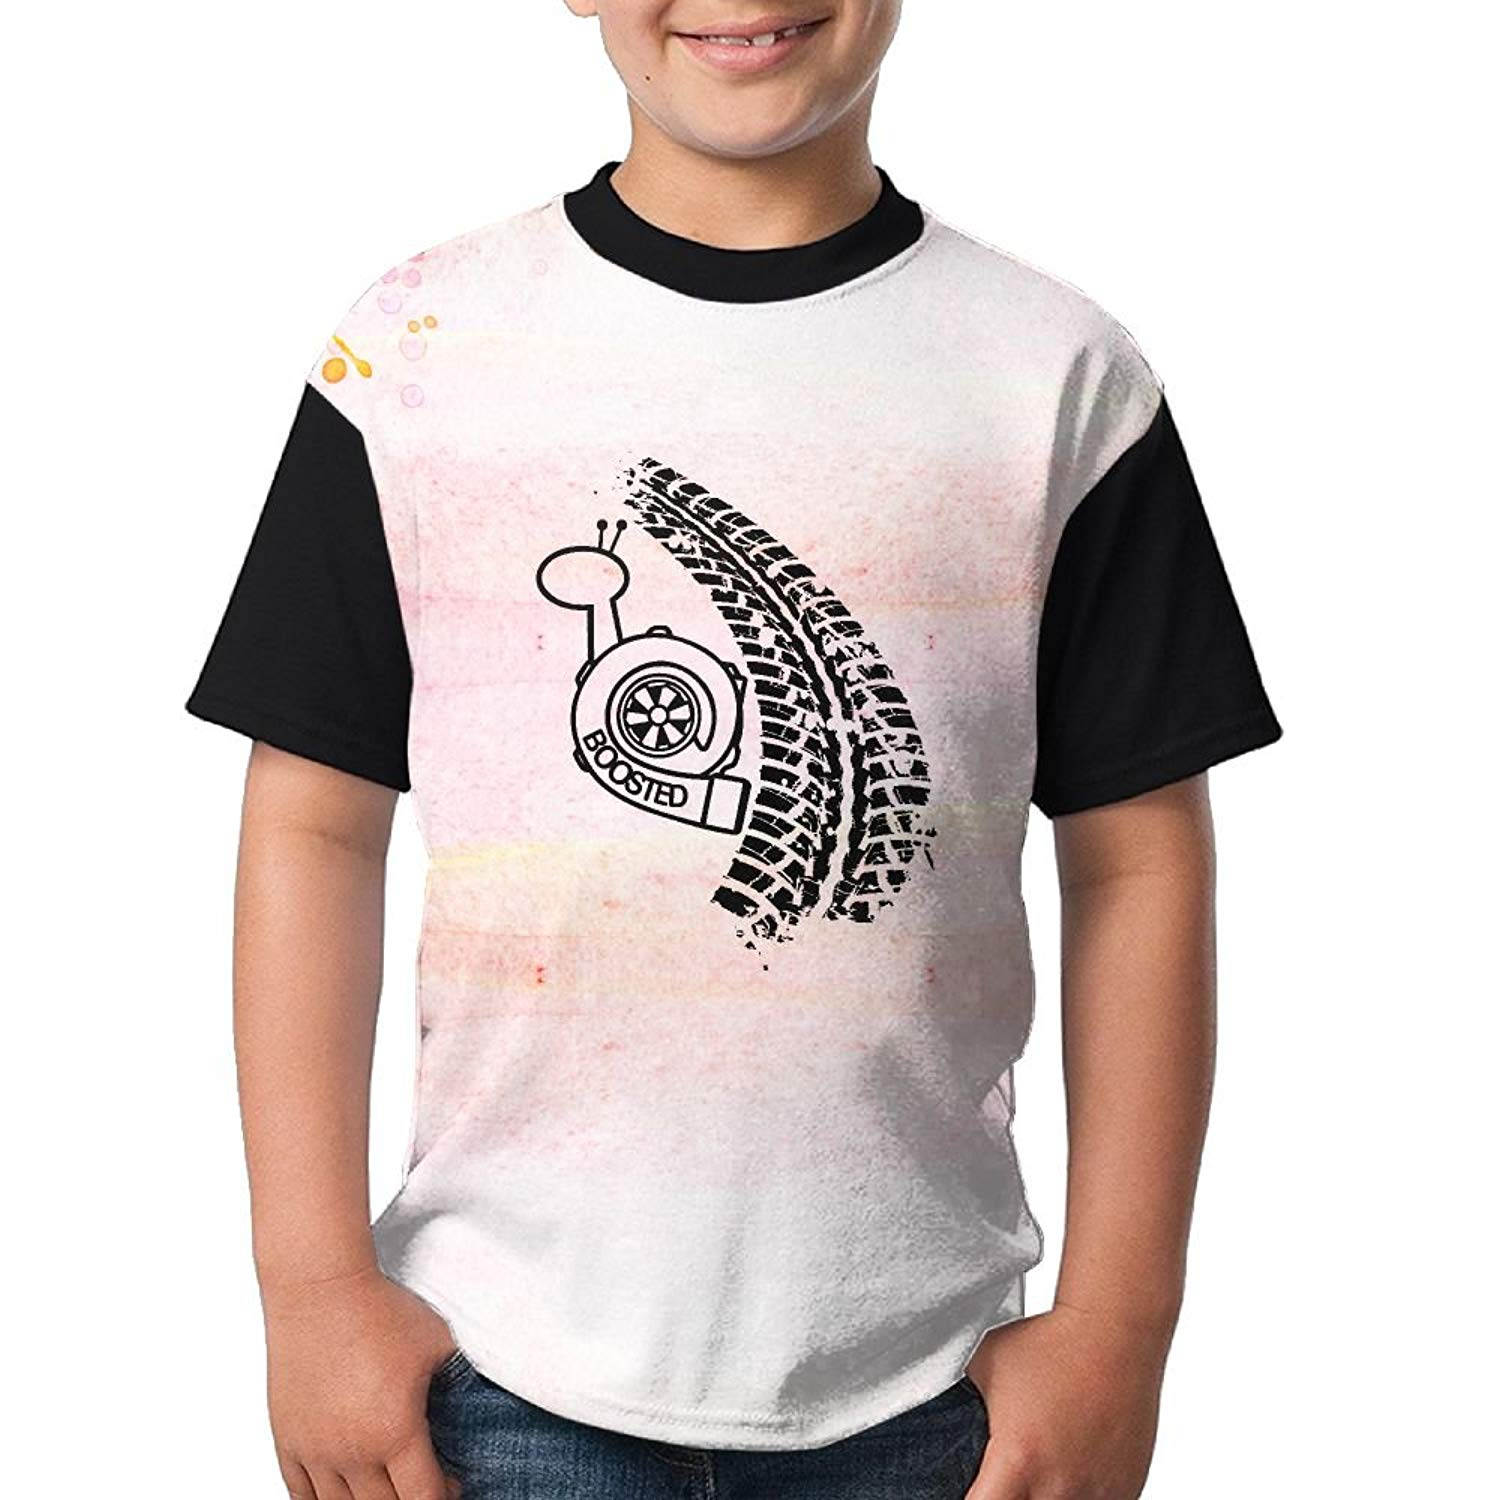 Cheap Boost Shirt Find Deals On Line At Alibabacom Turbo Bass Booster Get Quotations Hsmb Tshirt Snail Jdm Boys Sport Short Sleeve T